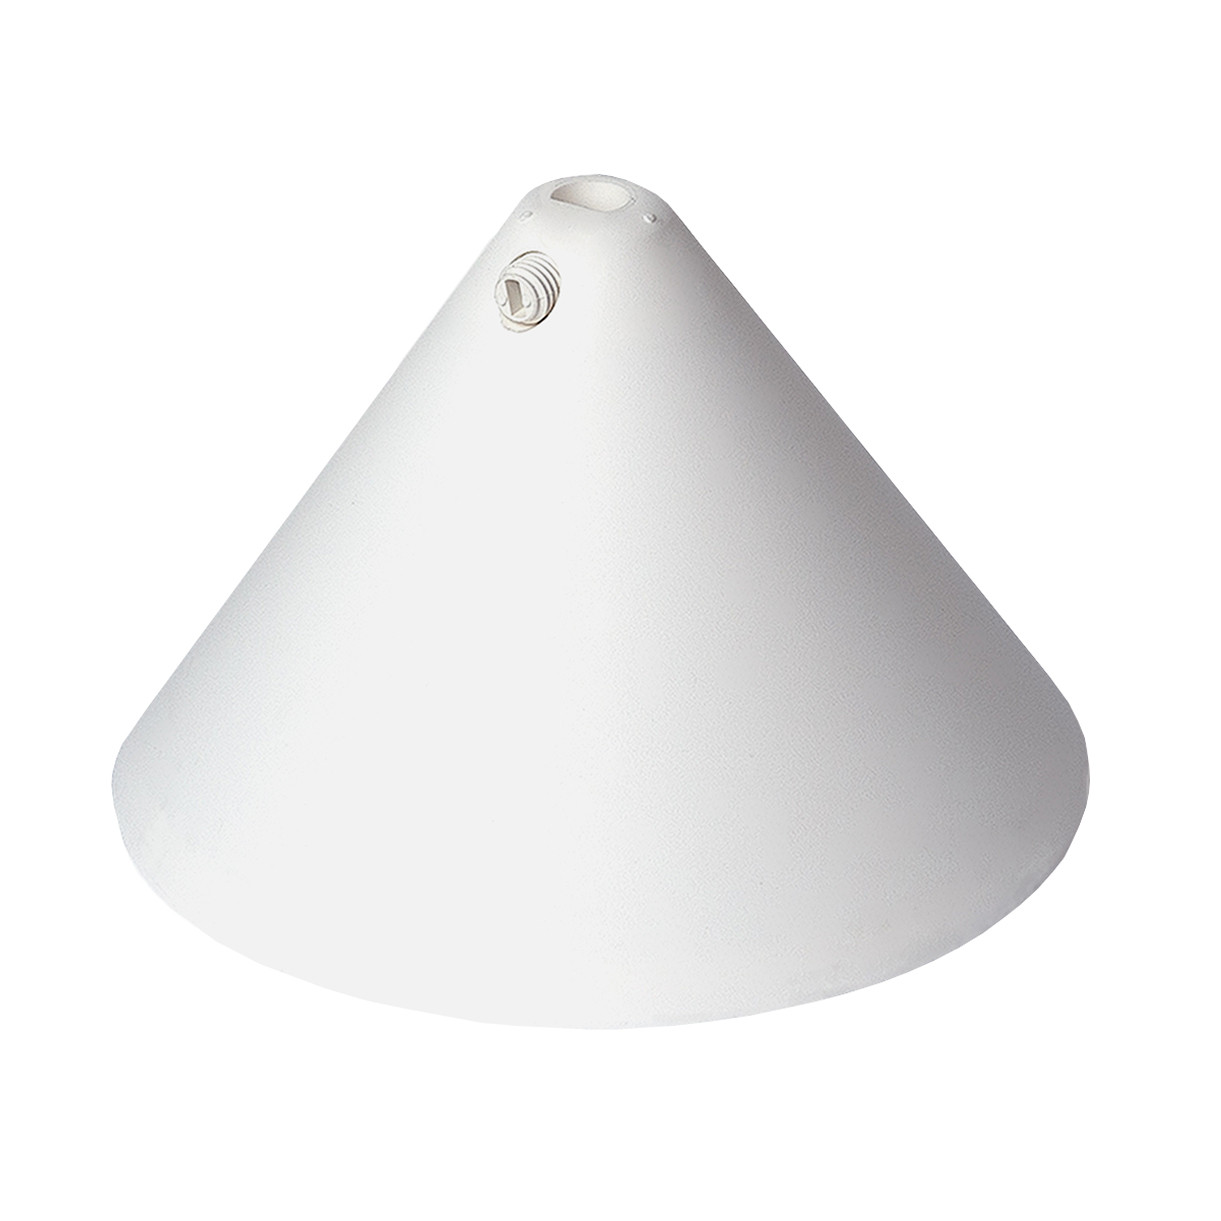 Canopy - Plastic Cone Shape With Screwable Cord Grip White